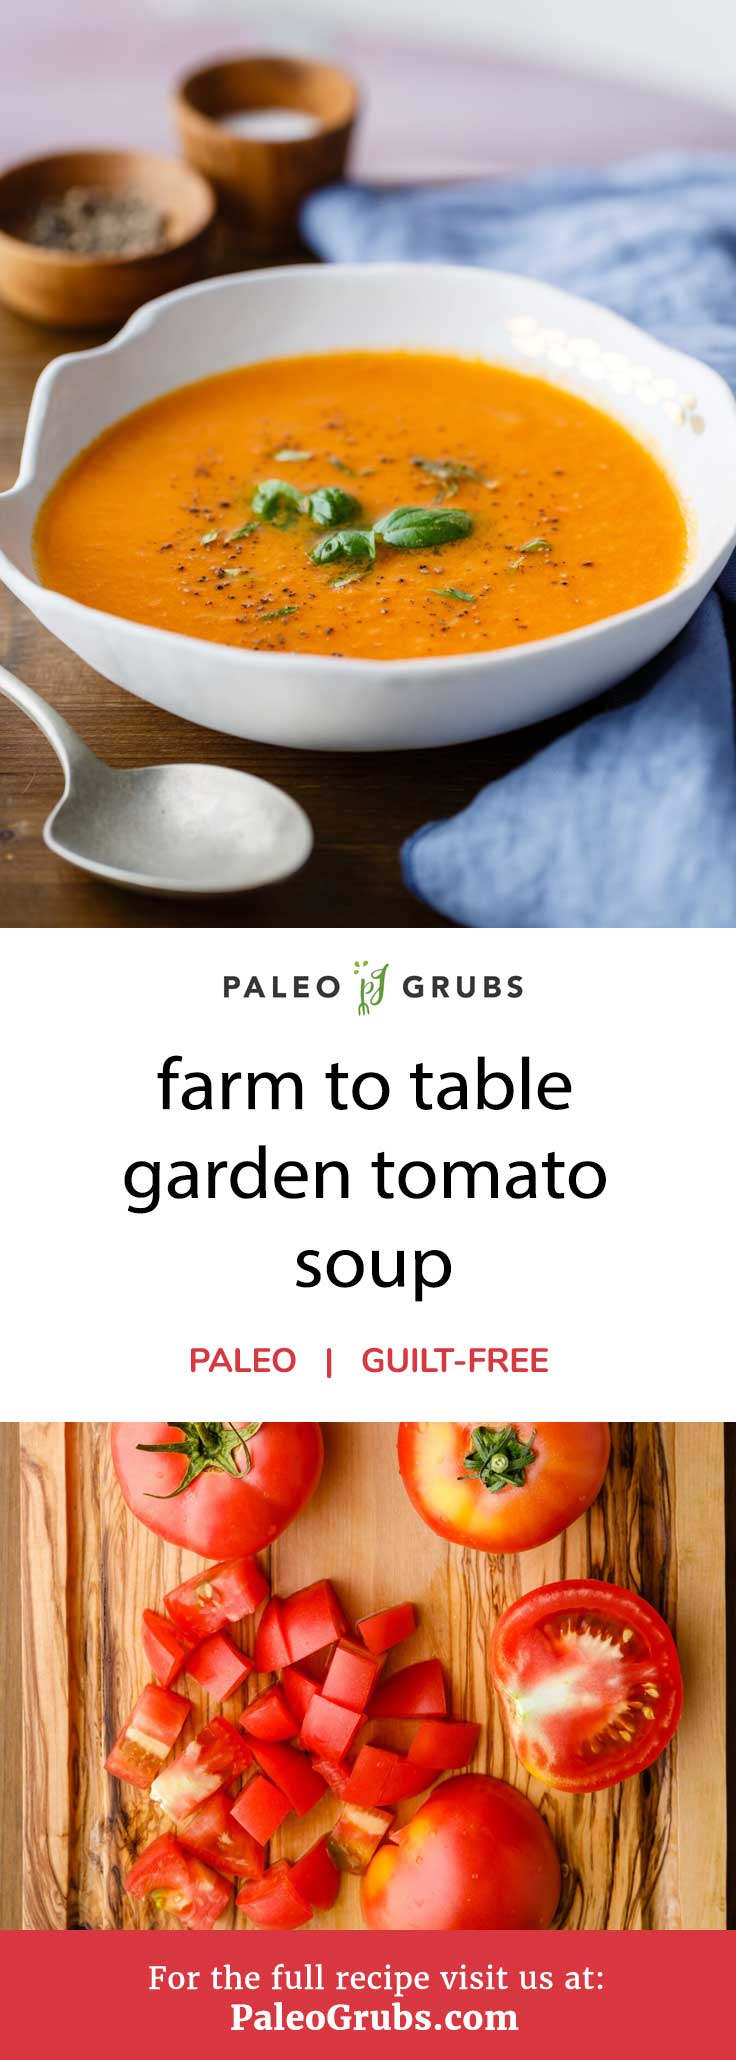 Farm-to-table tomato soup anyone? The best kind of soups are without a doubt, homemade. Made with fresh ingredients straight from the garden, there is no mistaking a good tomato soup that has been stewed with the right blend of herbs and spices. When done correctly, tomato soup can be an excellent appetizer or main dish on its own. Here is how to do it.